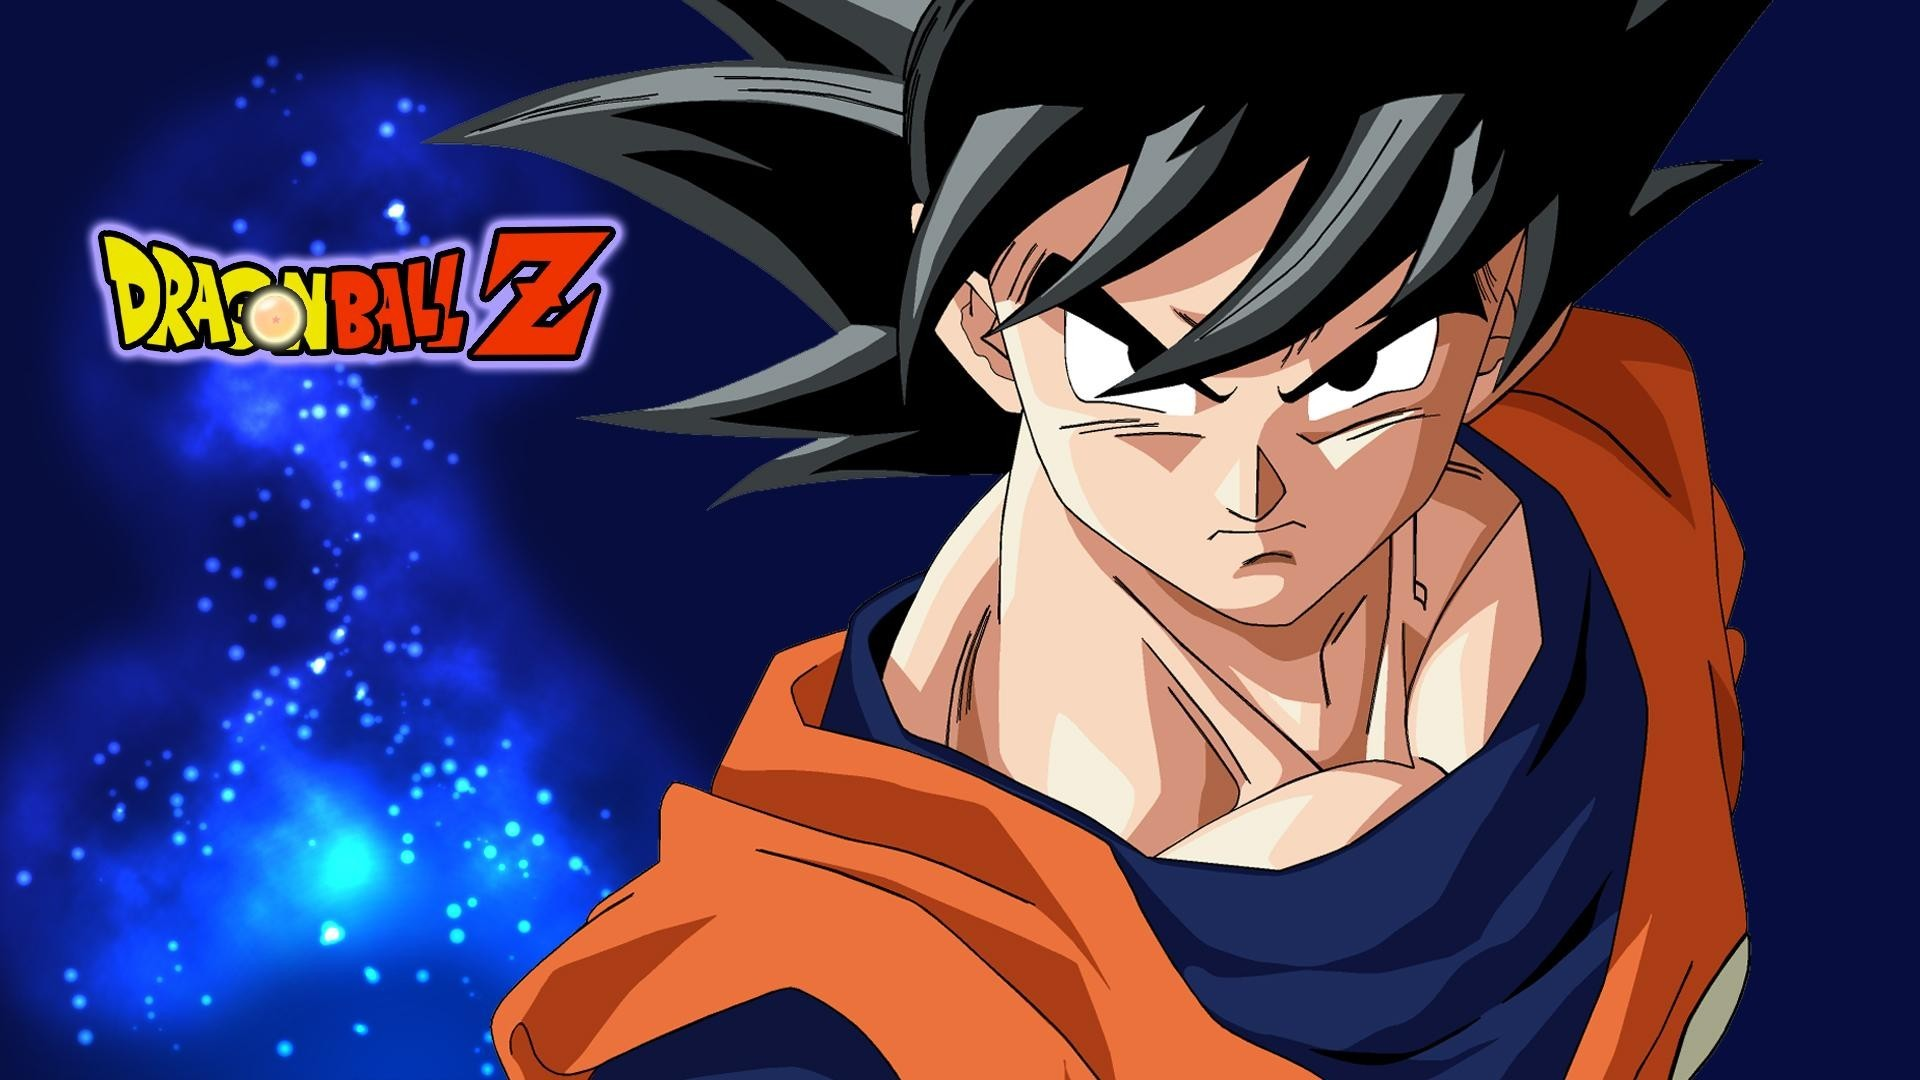 Super saiyan 4 goku and vegeta wallpapers 60 images - Dragon ball z goku son ...